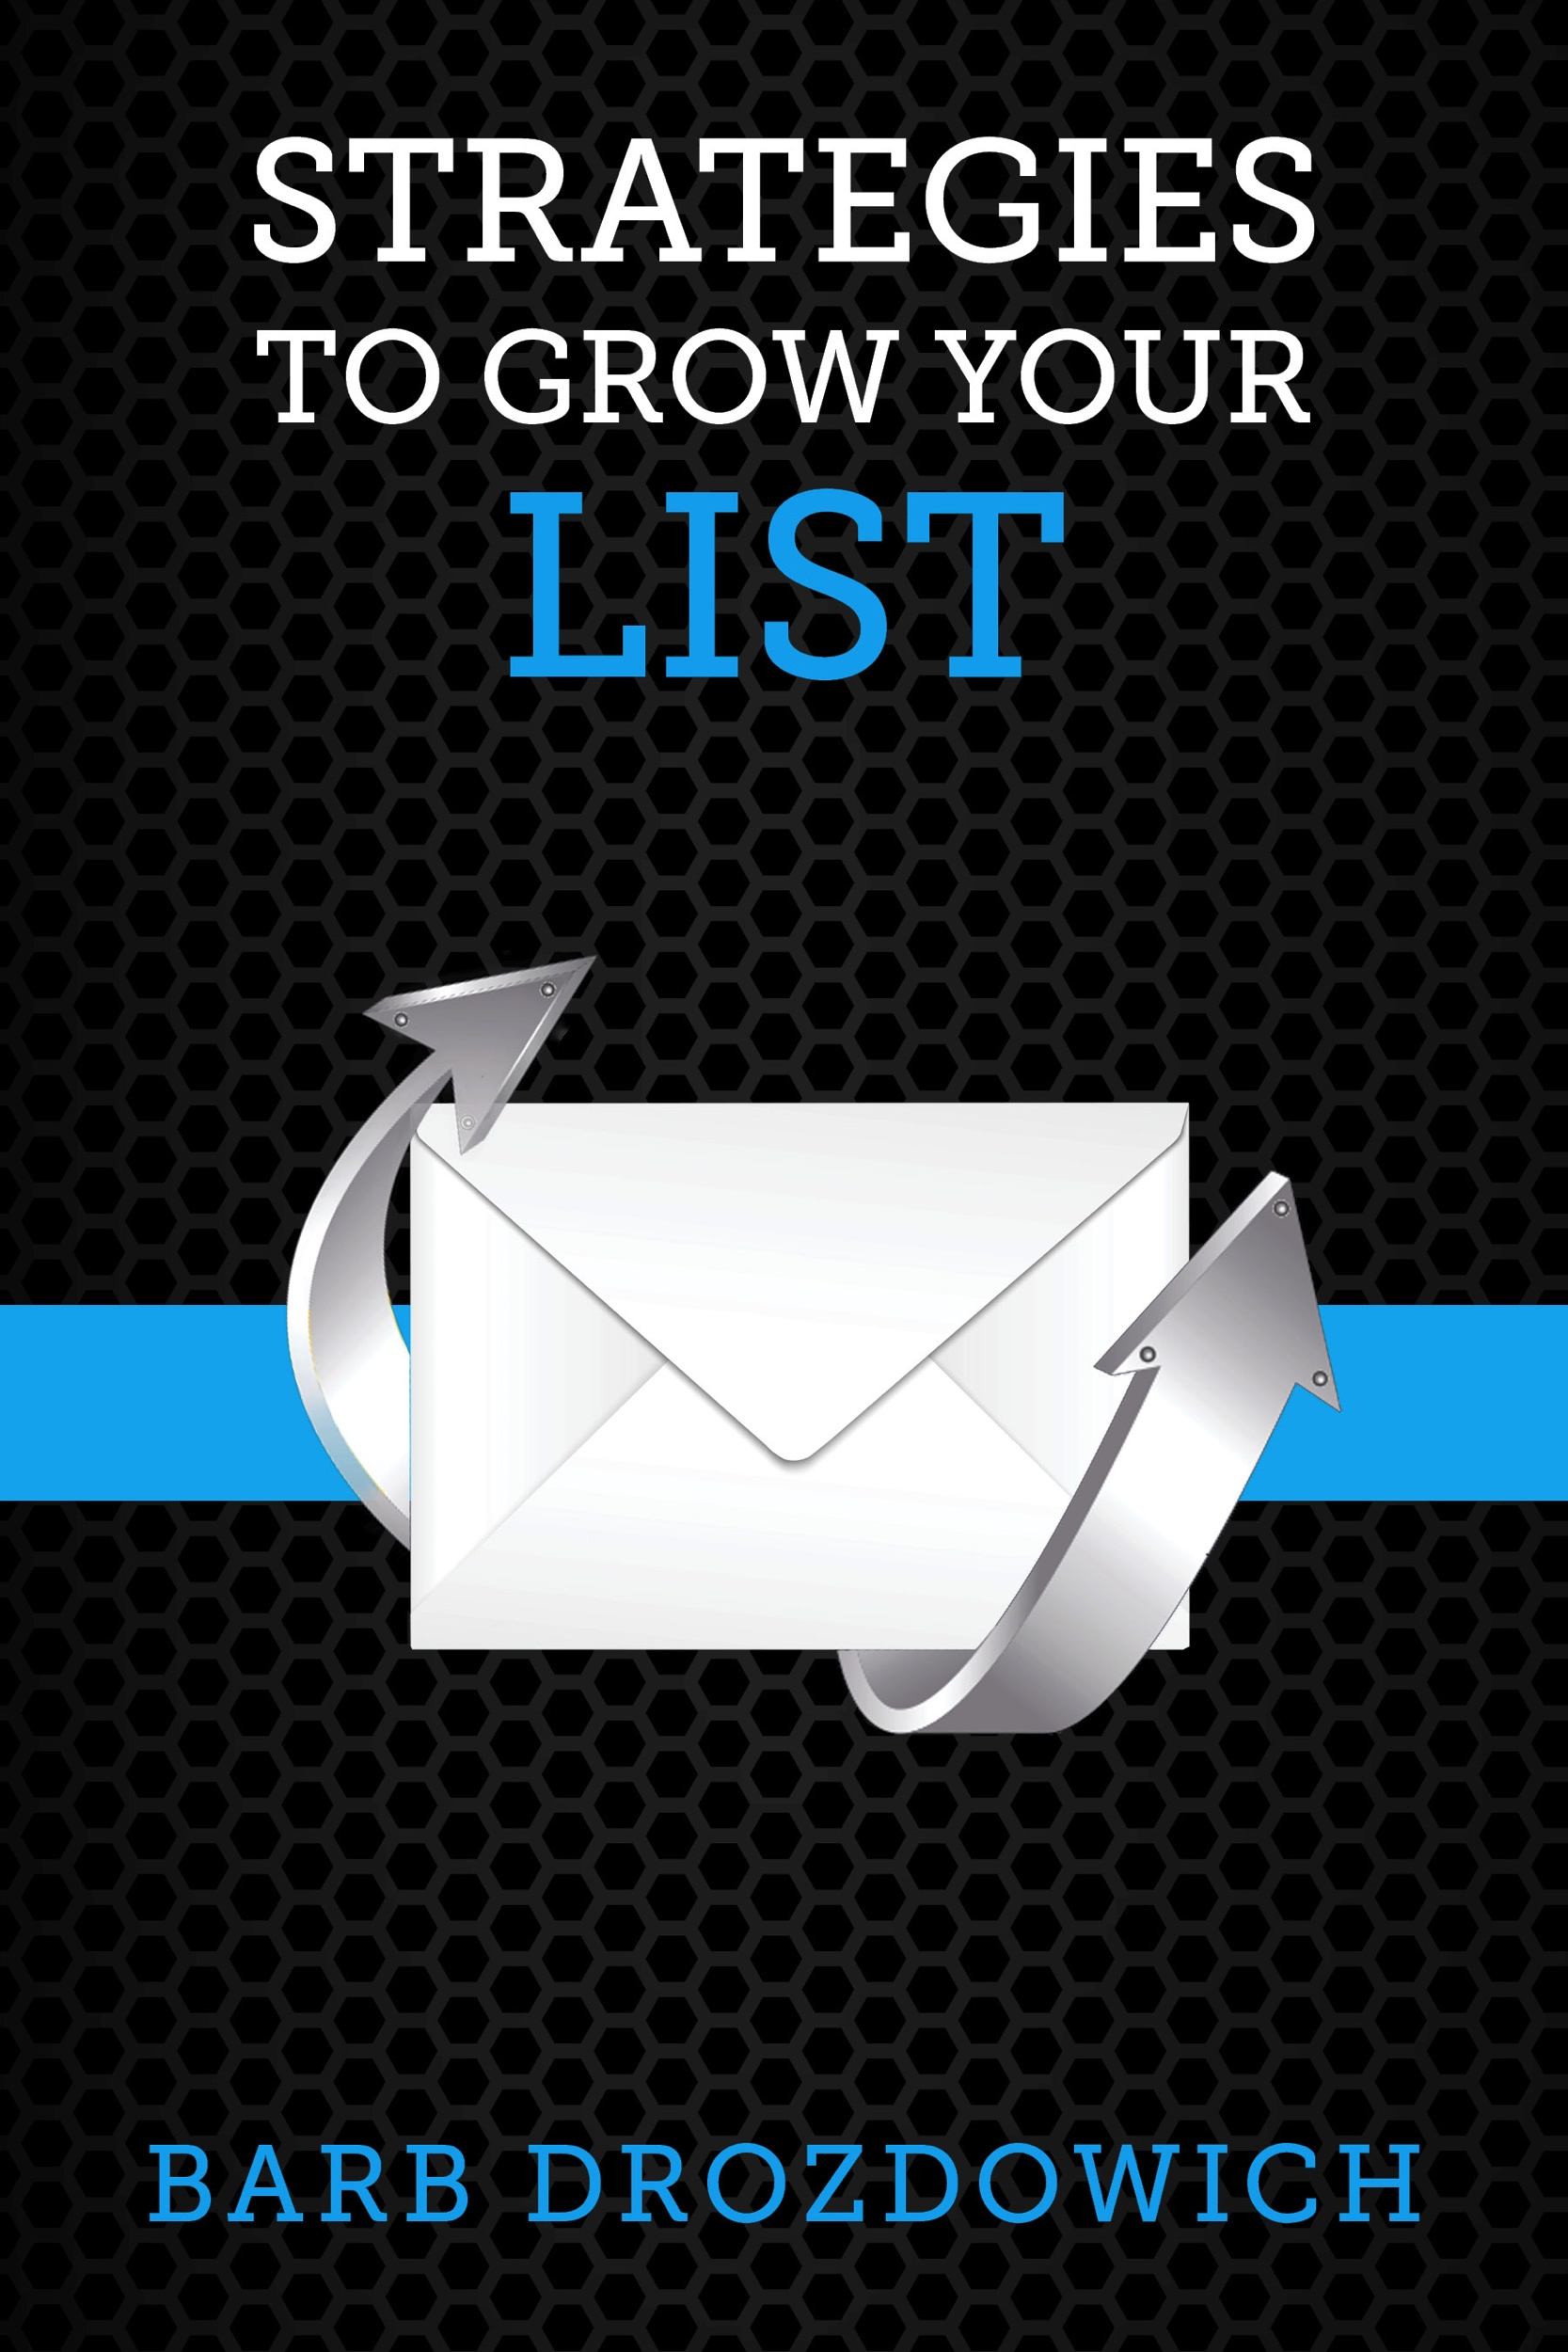 Strategies-to-Grow-Your-List-Kindle